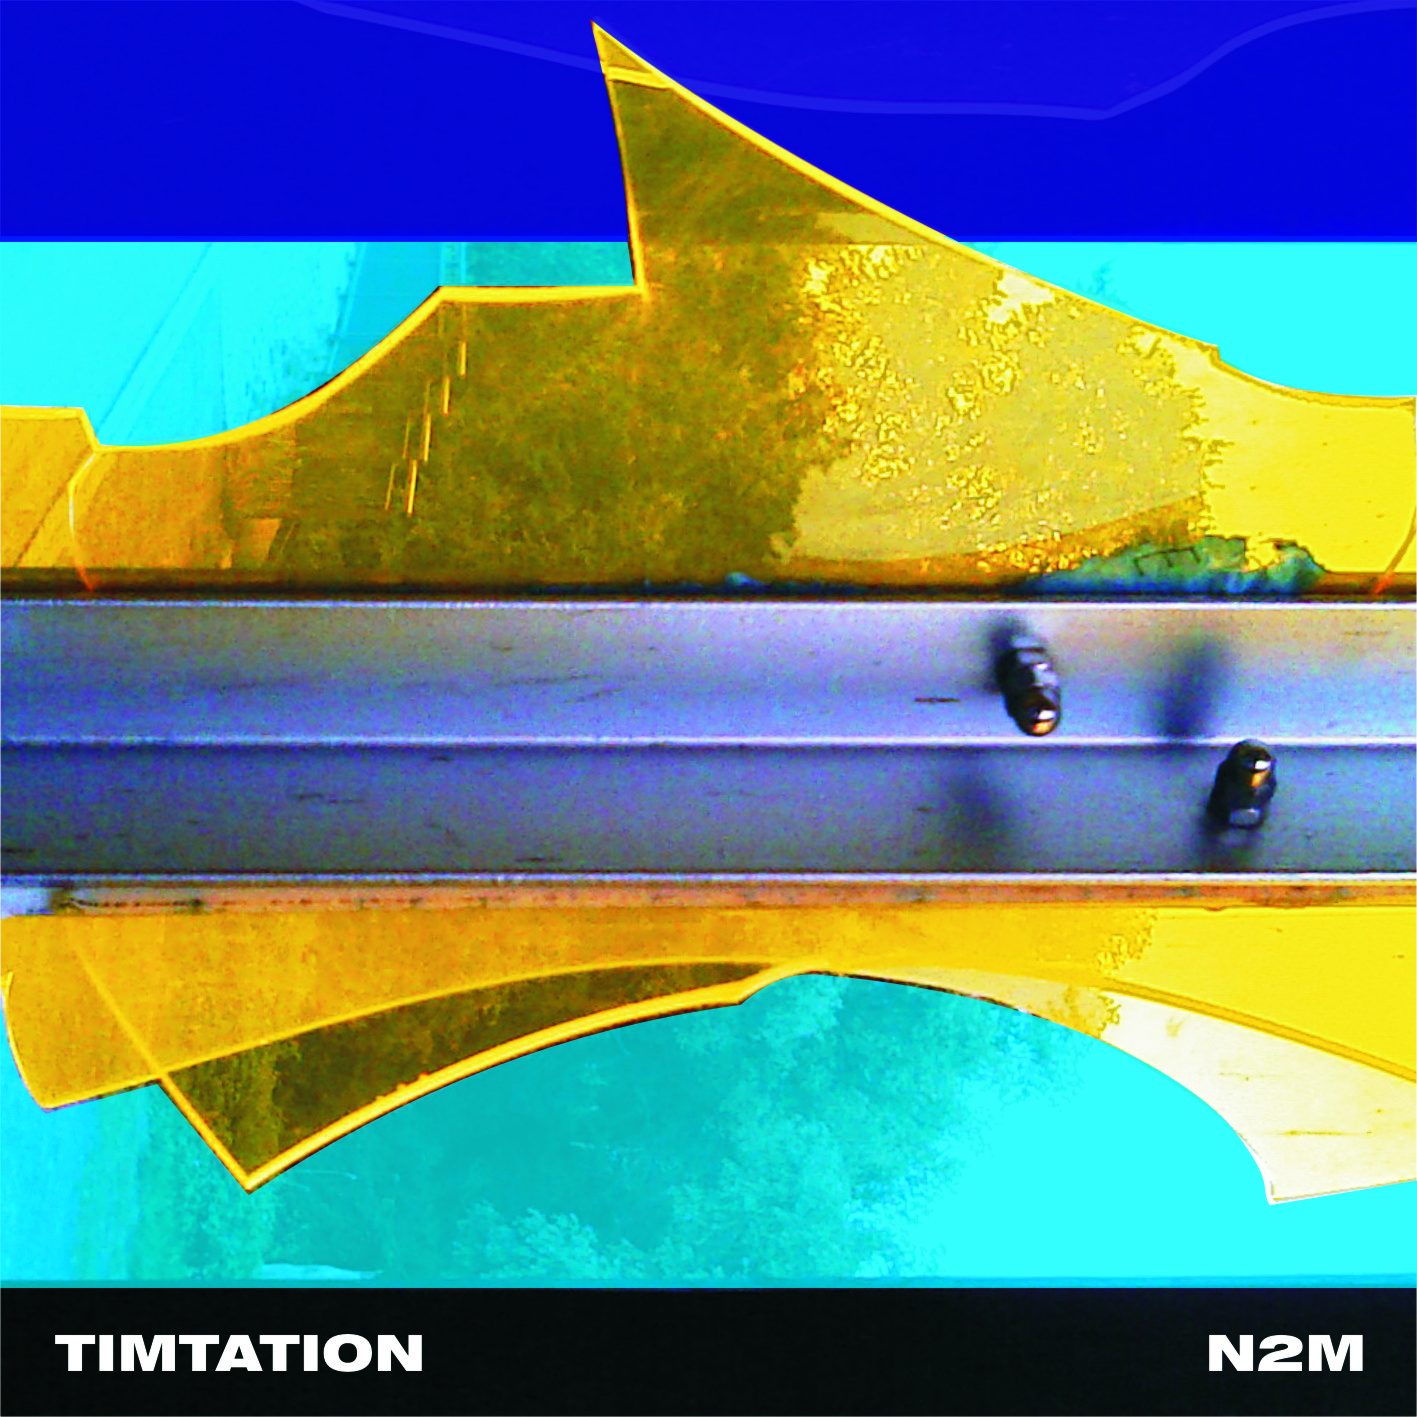 Timtation - N2M Cover